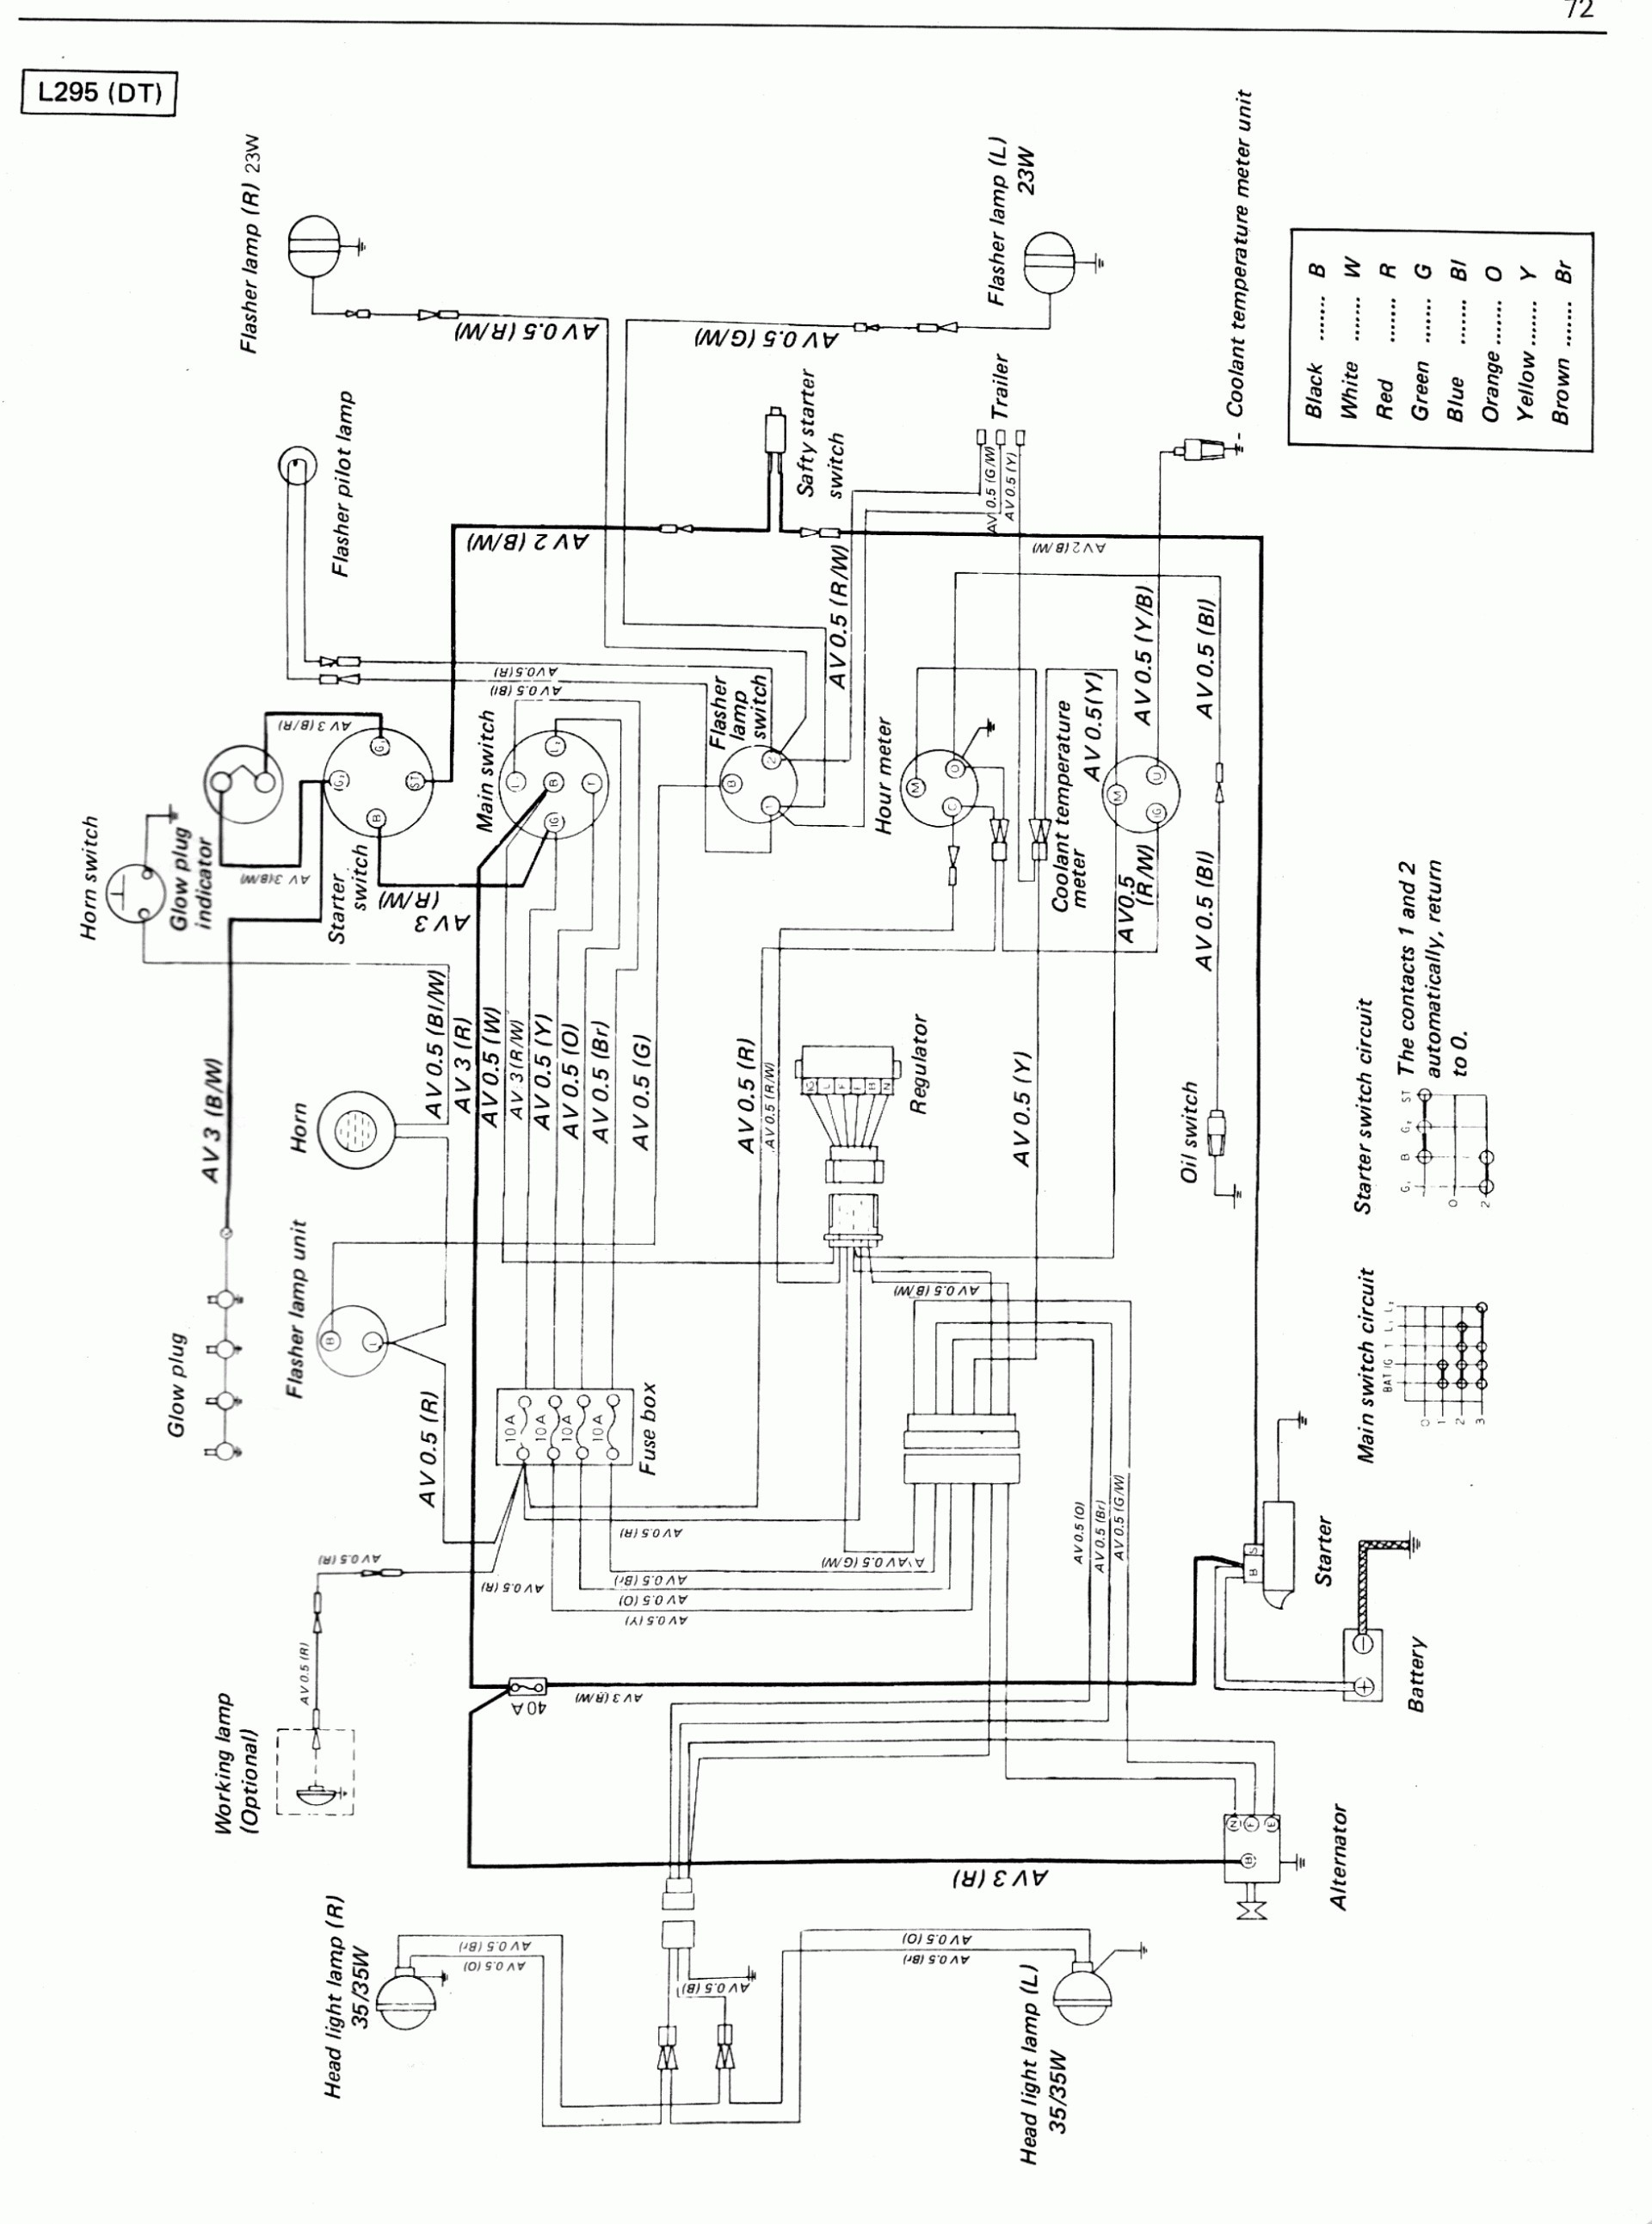 Kubotasel Ignition Switch Wiring Diagram